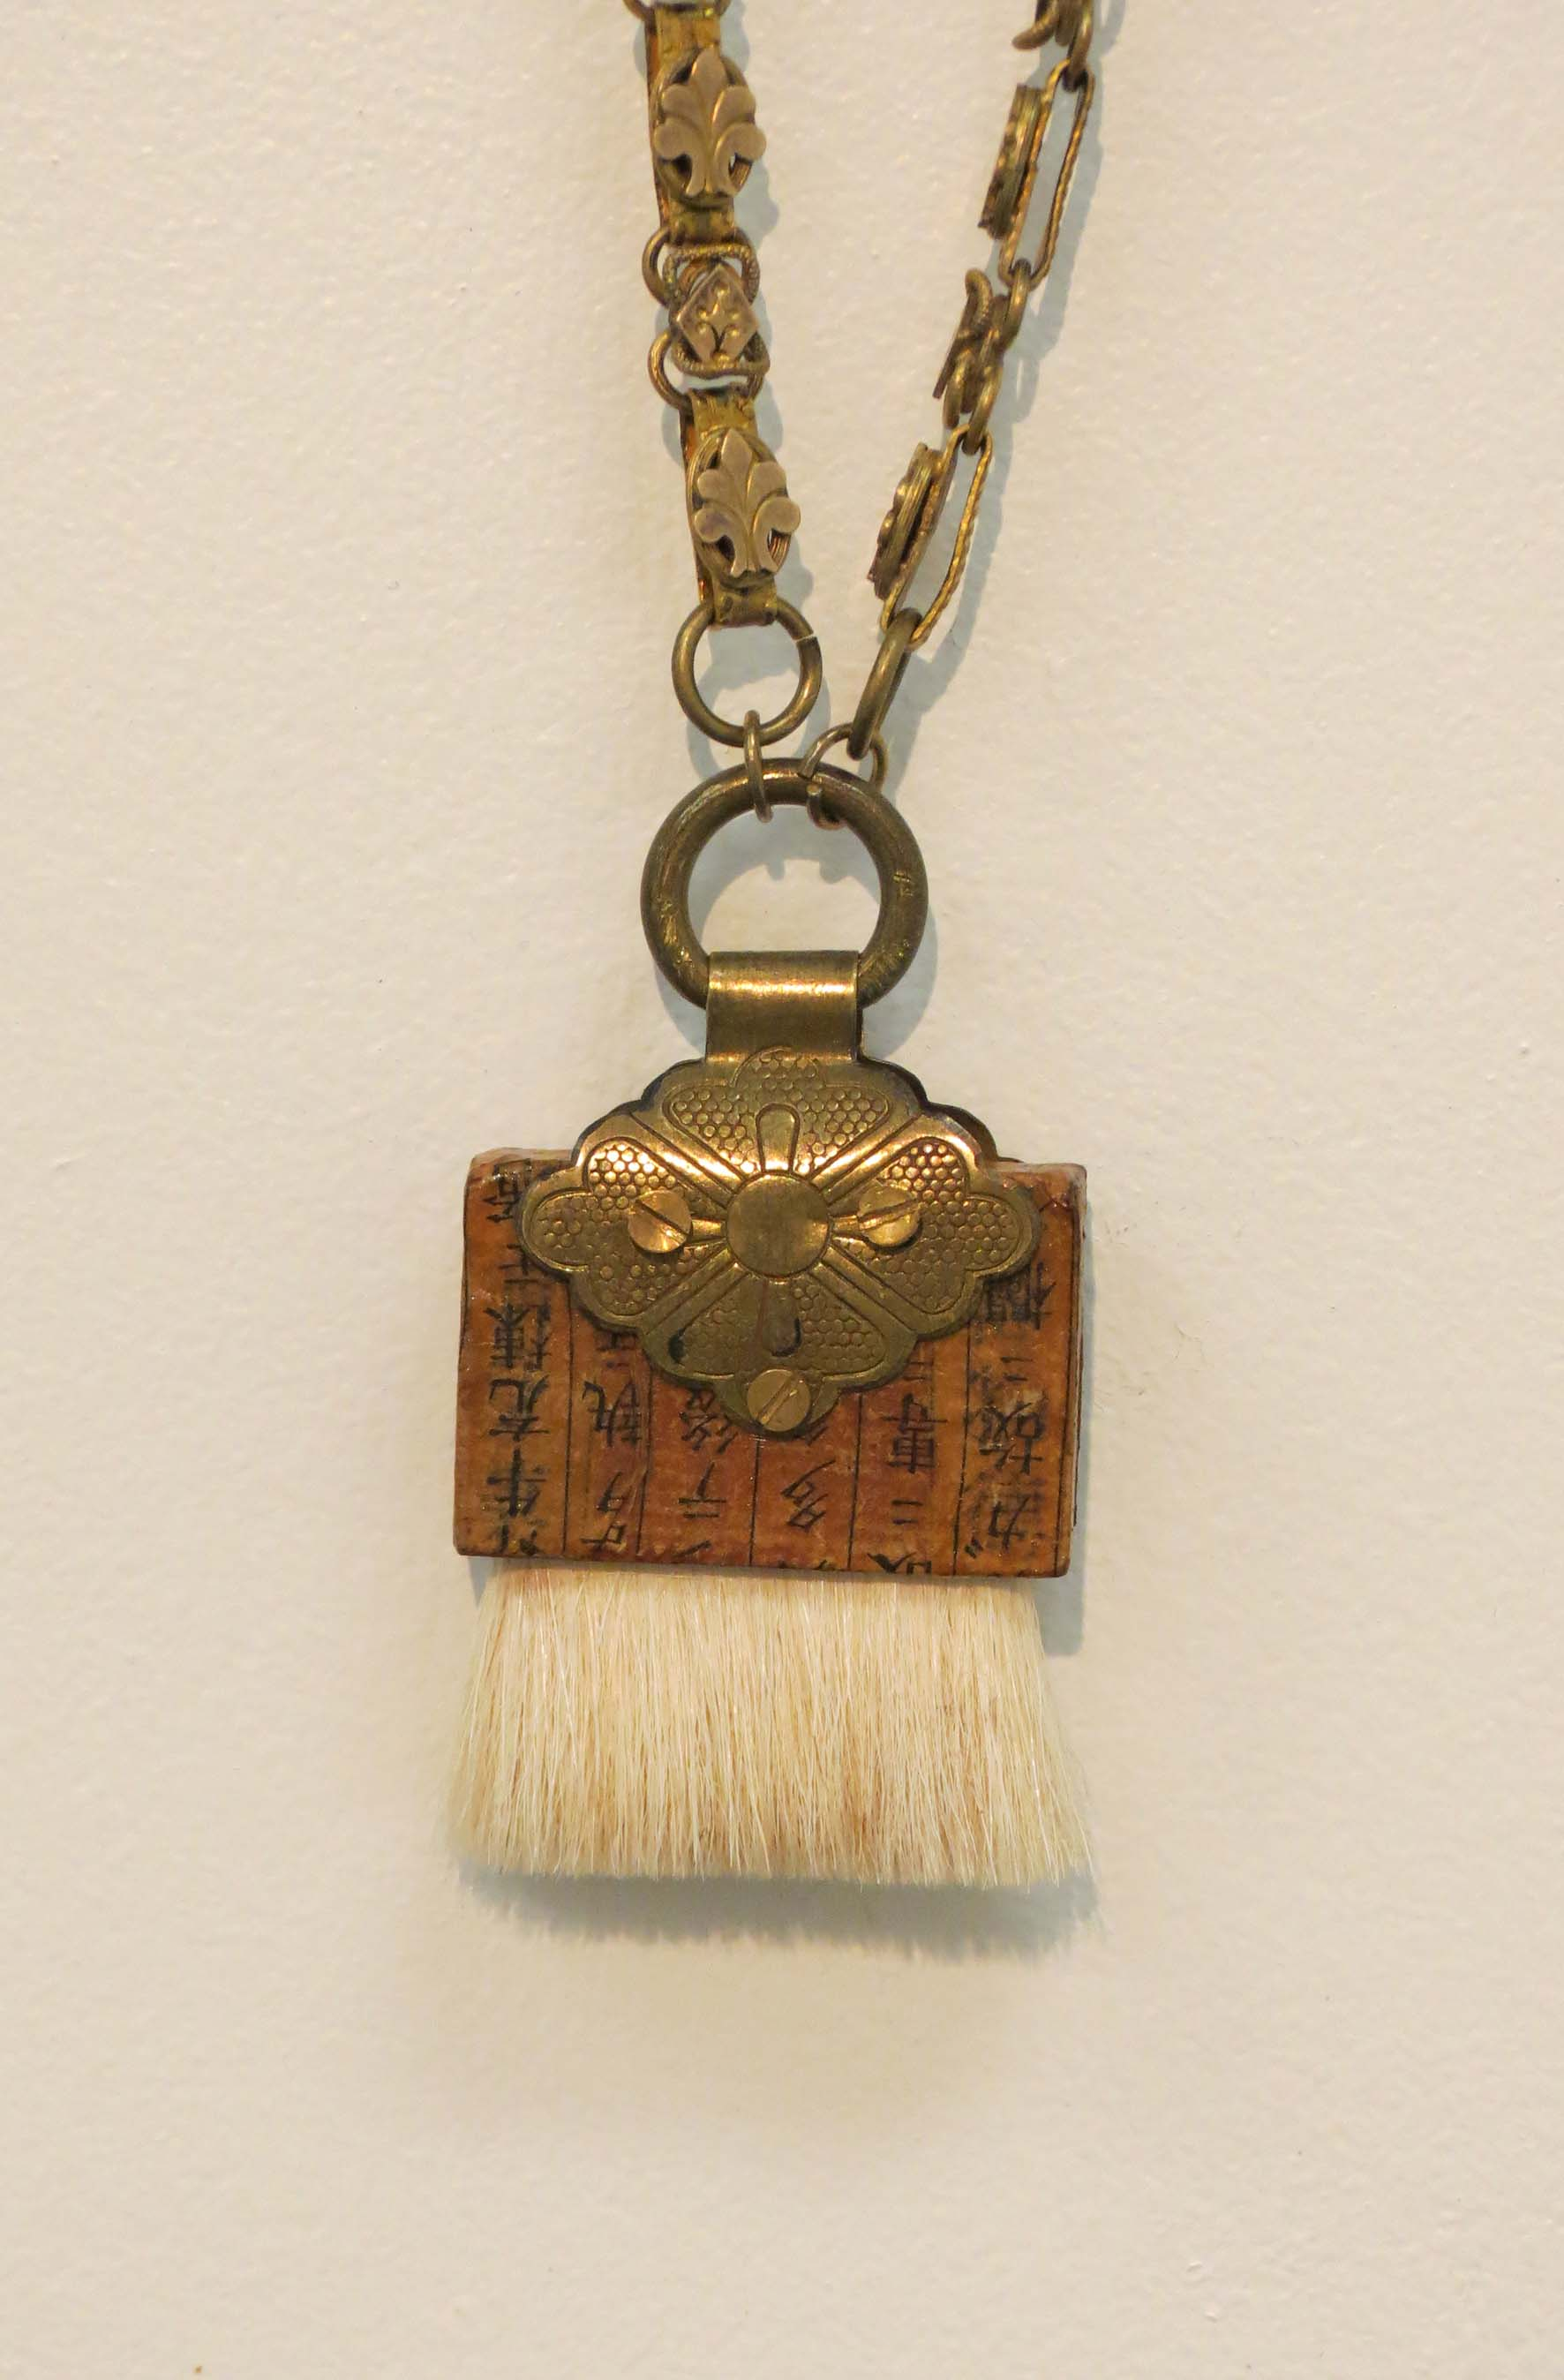 10. Kathy Aspinall, 'Brush I', 2018, wooden brush, brass, Japanese paper, antique chain, necklace, $295